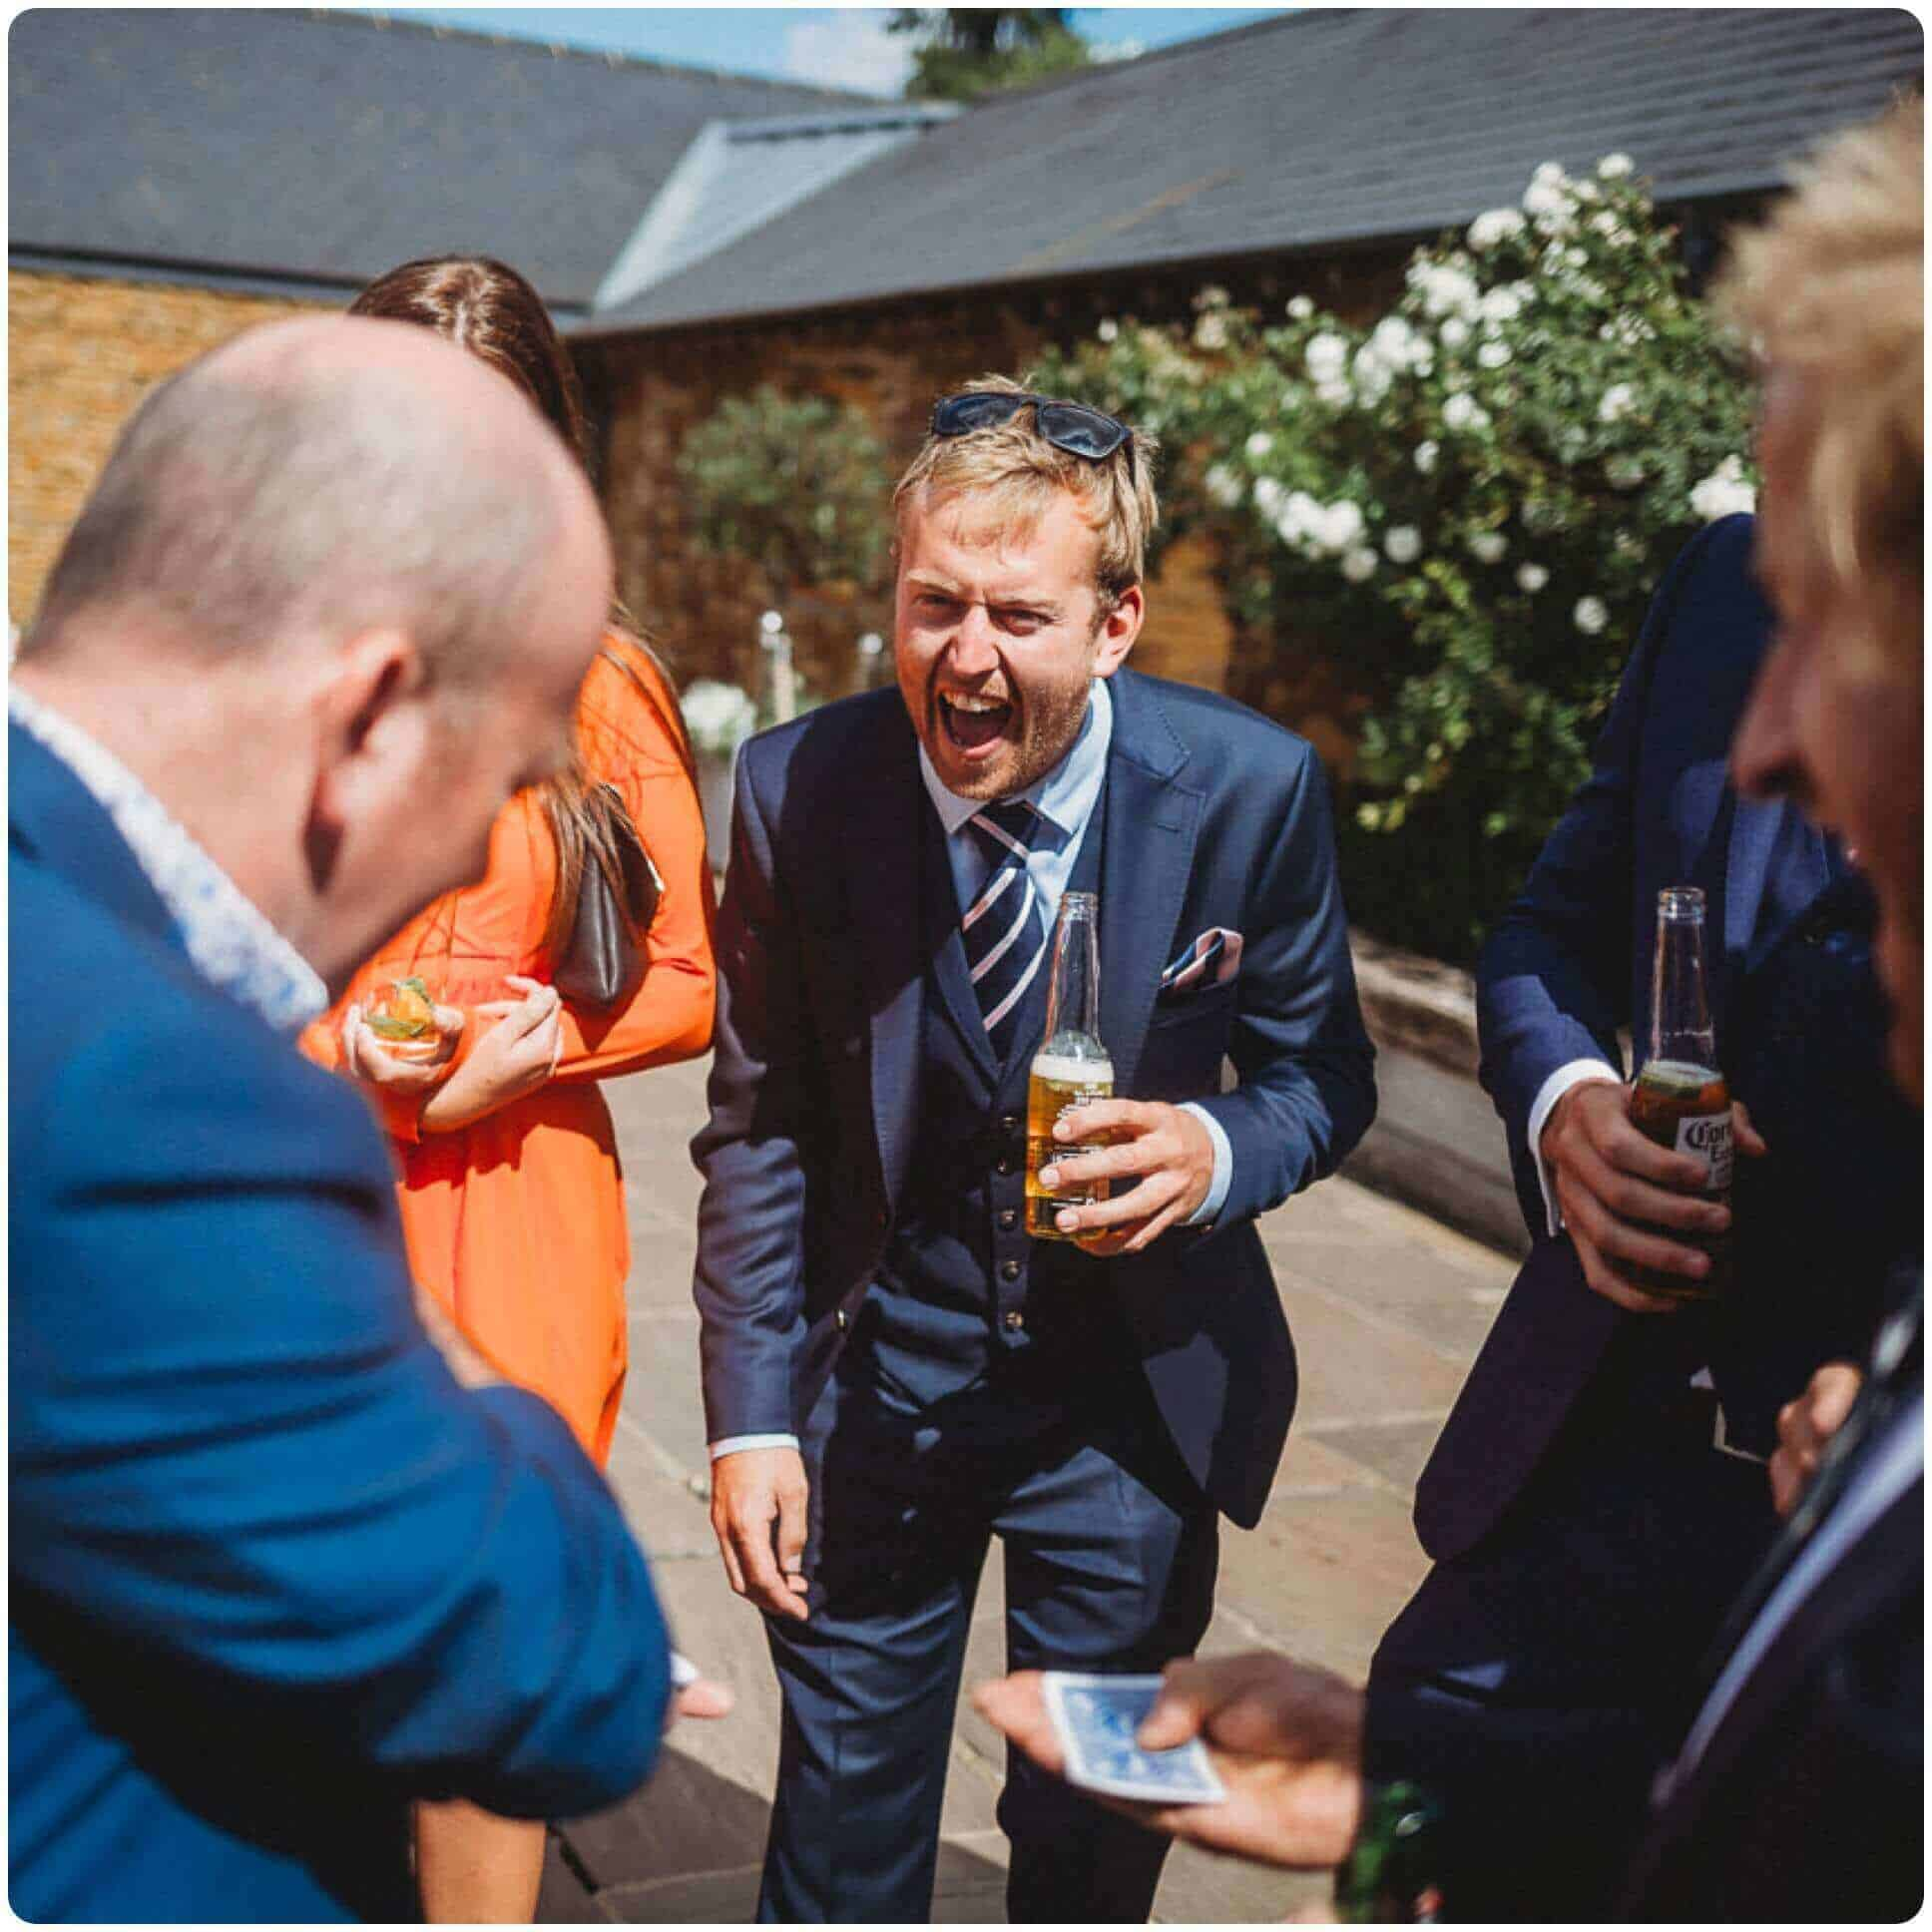 Magician Will Gray performing for wedding guests at Dodford Manor, Northampton